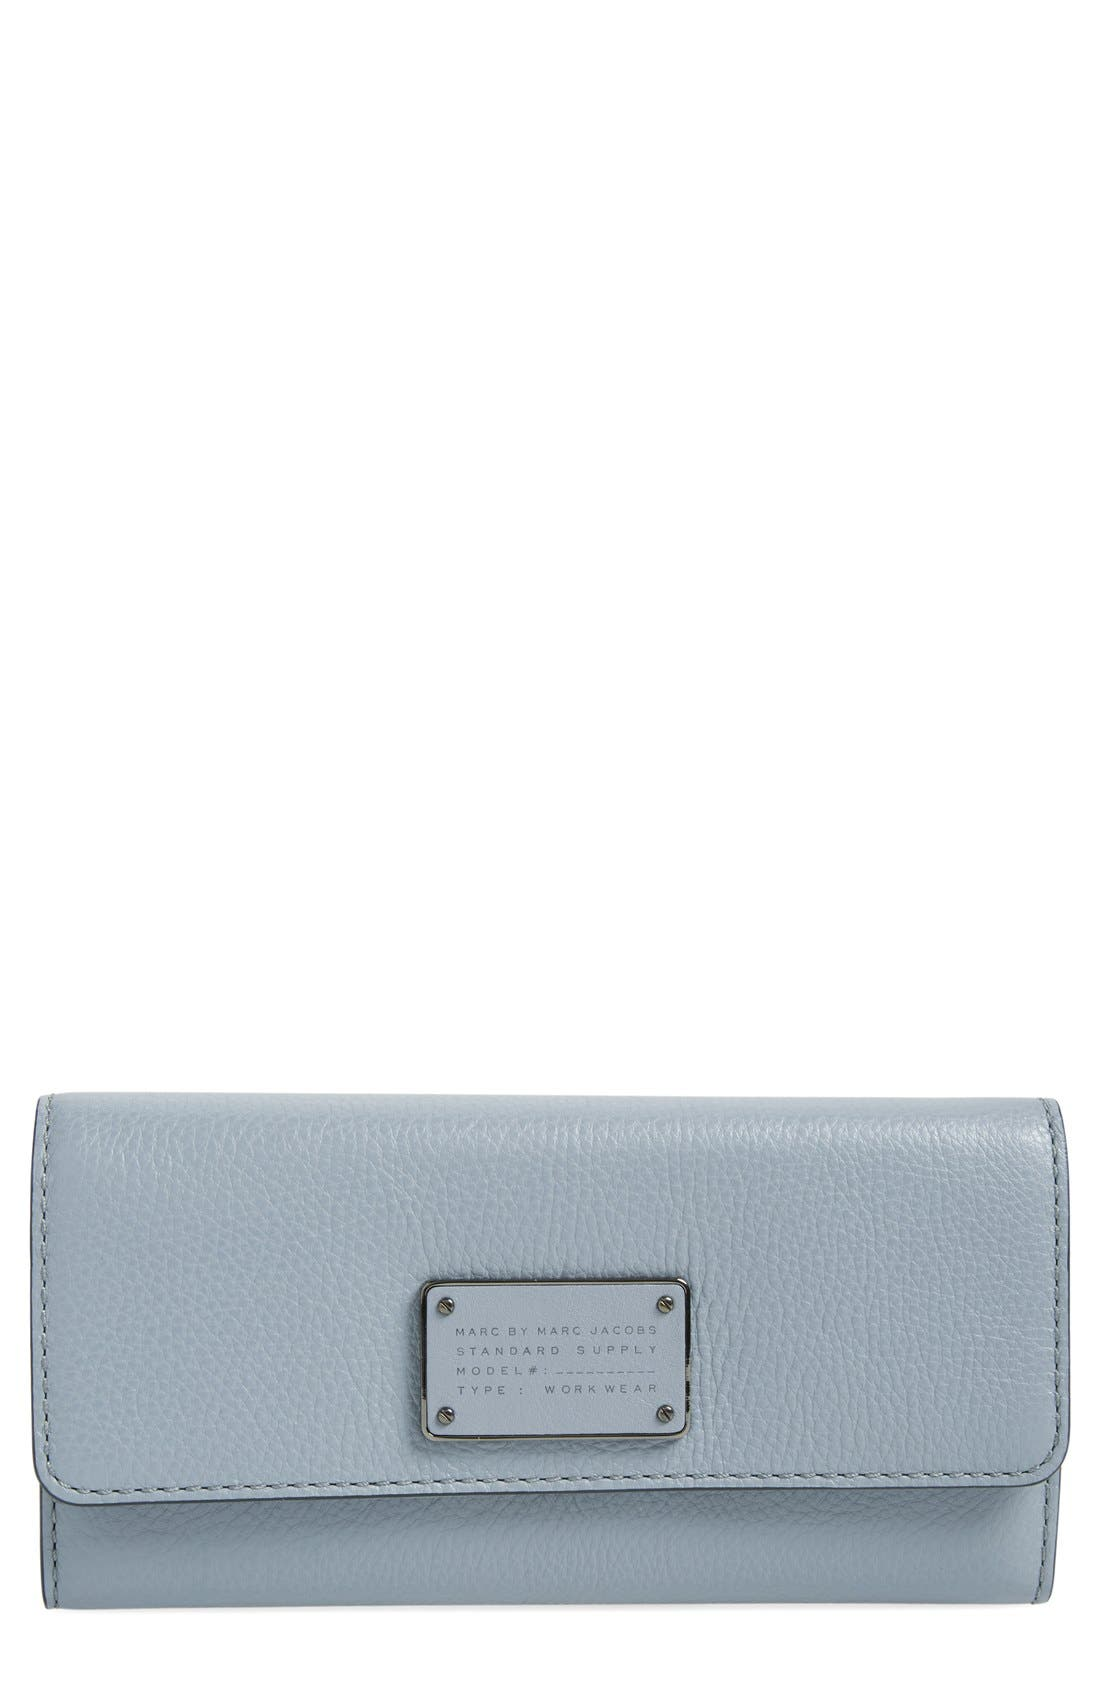 Main Image - MARC BY MARC JACOBS Trifold Flap Wallet